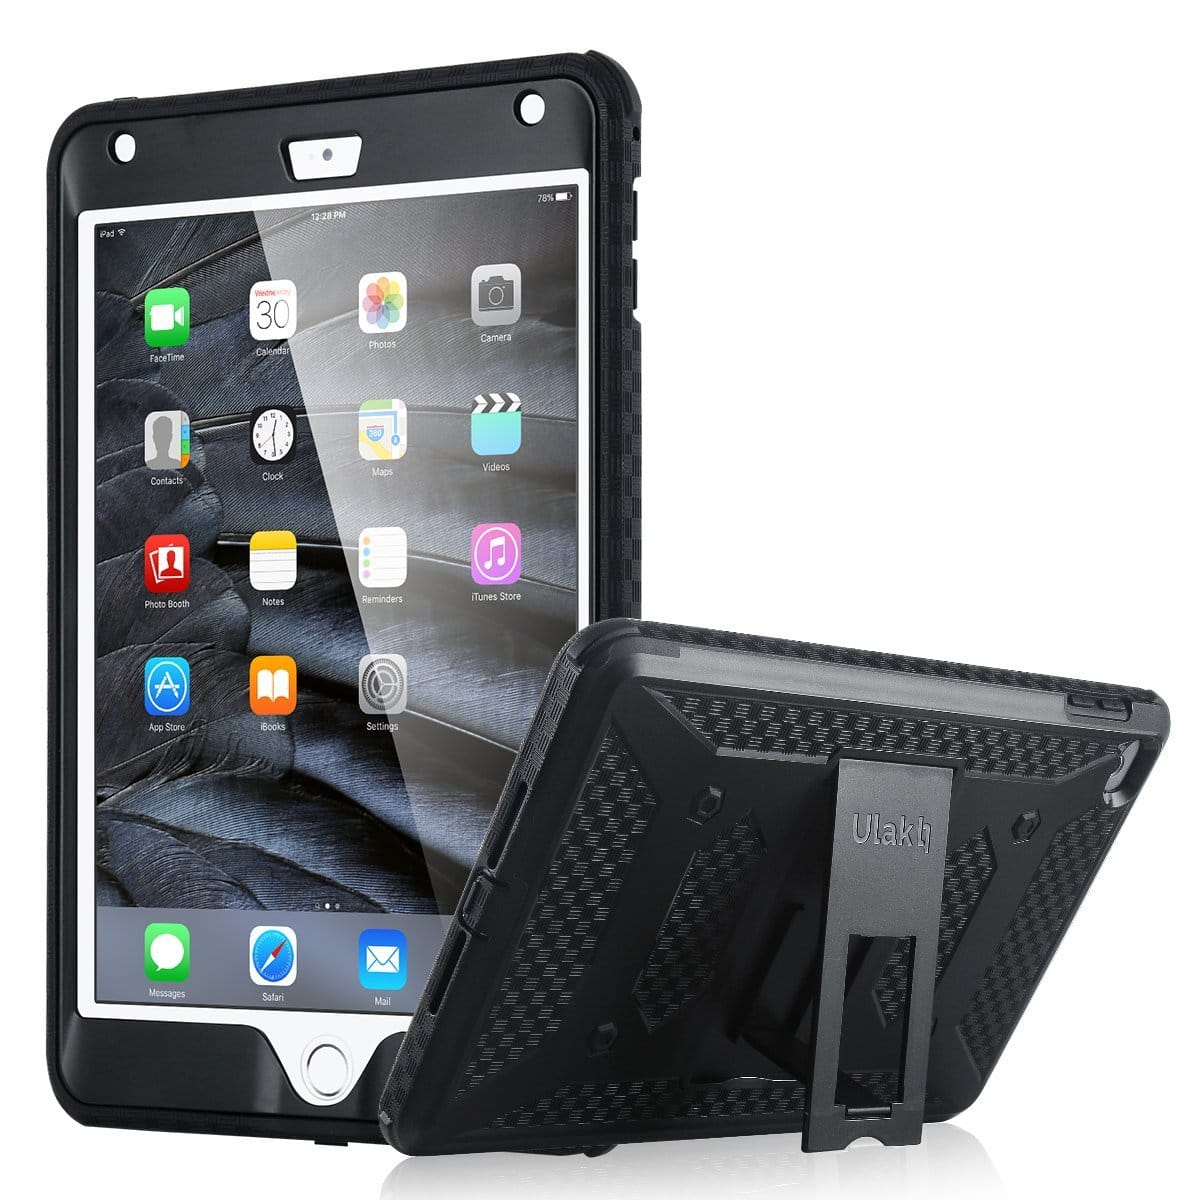 Ulak Case Sale: iPad Mini 4 $2.80, iPad Pro 12.9 $2.80, iPhone 6/6s from $1.96, Note 5 from $2.24 & More + Free Shipping